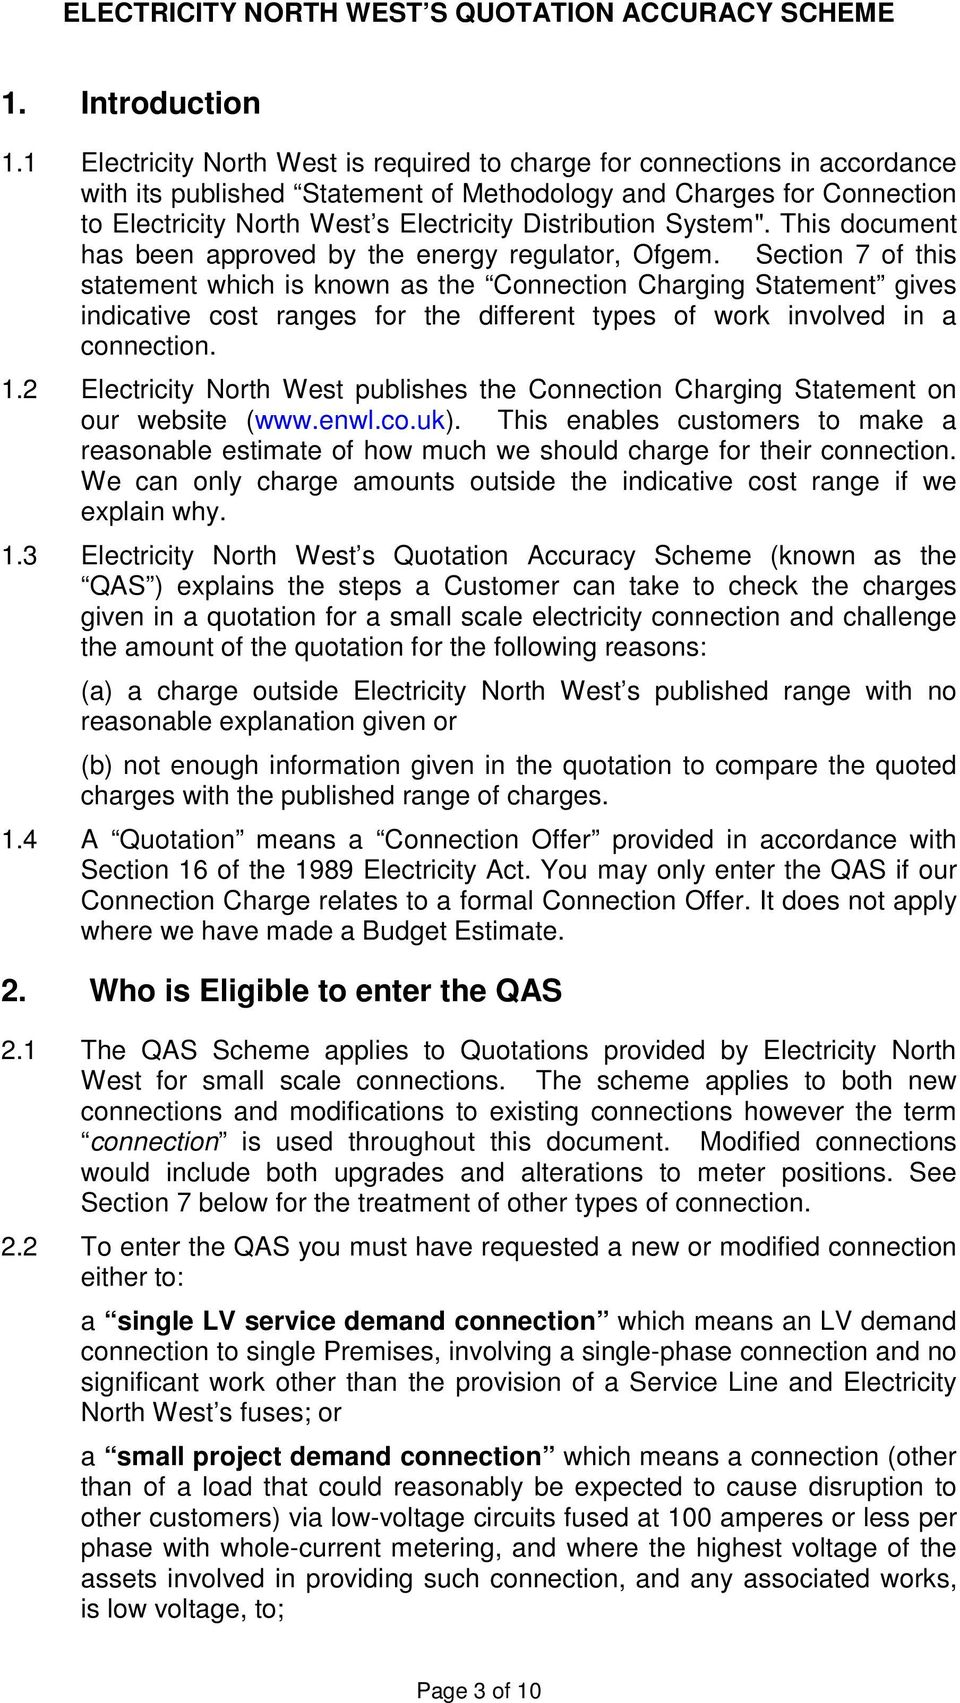 "Distribution System"". This document has been approved by the energy regulator, Ofgem."